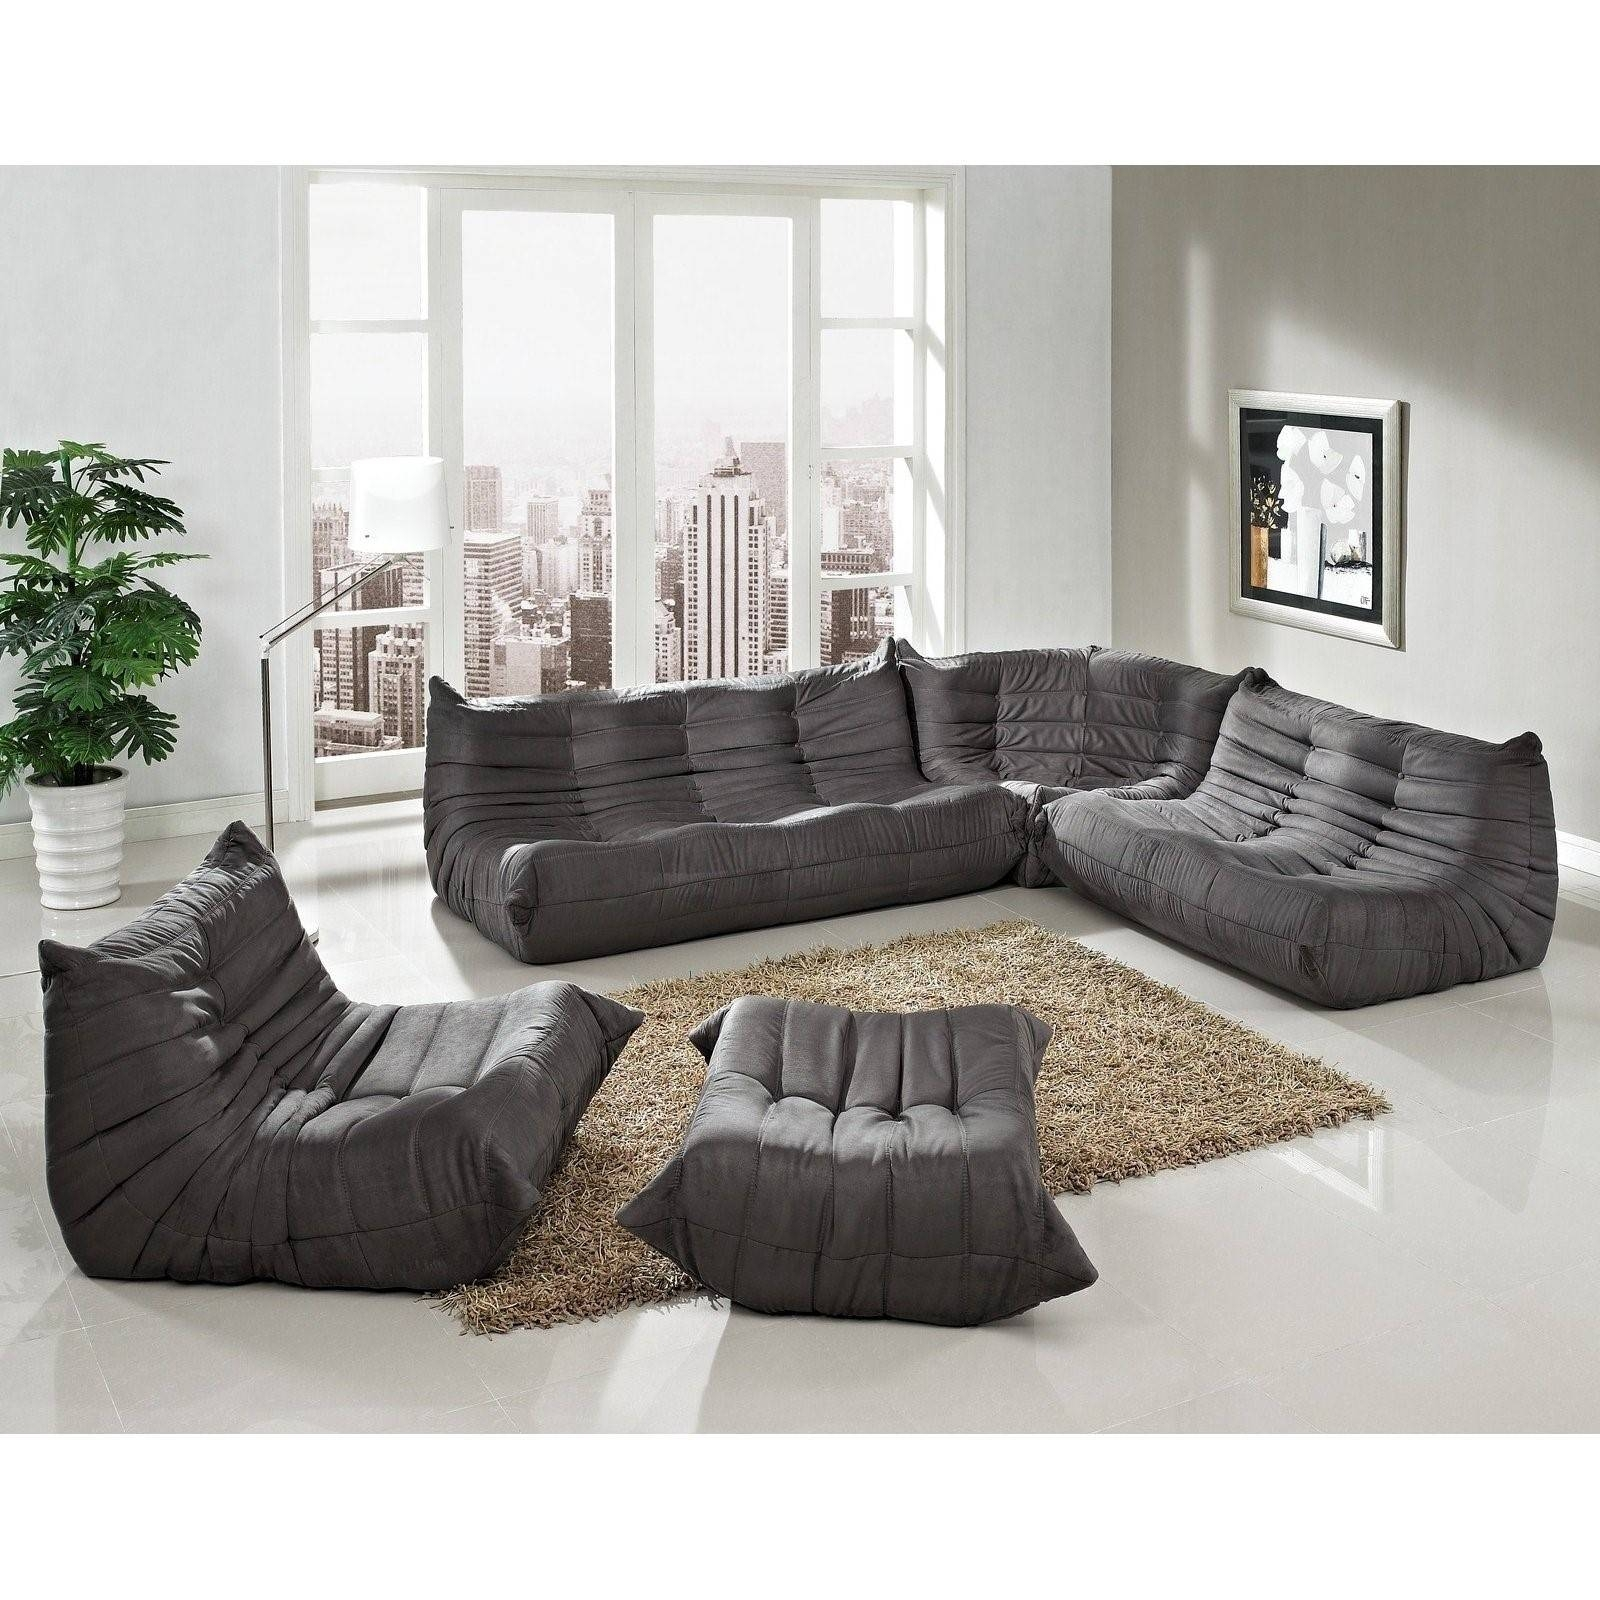 12 Ideas Of 10 Foot Sectional Sofa with 10 Foot Sectional Sofa (Image 8 of 30)